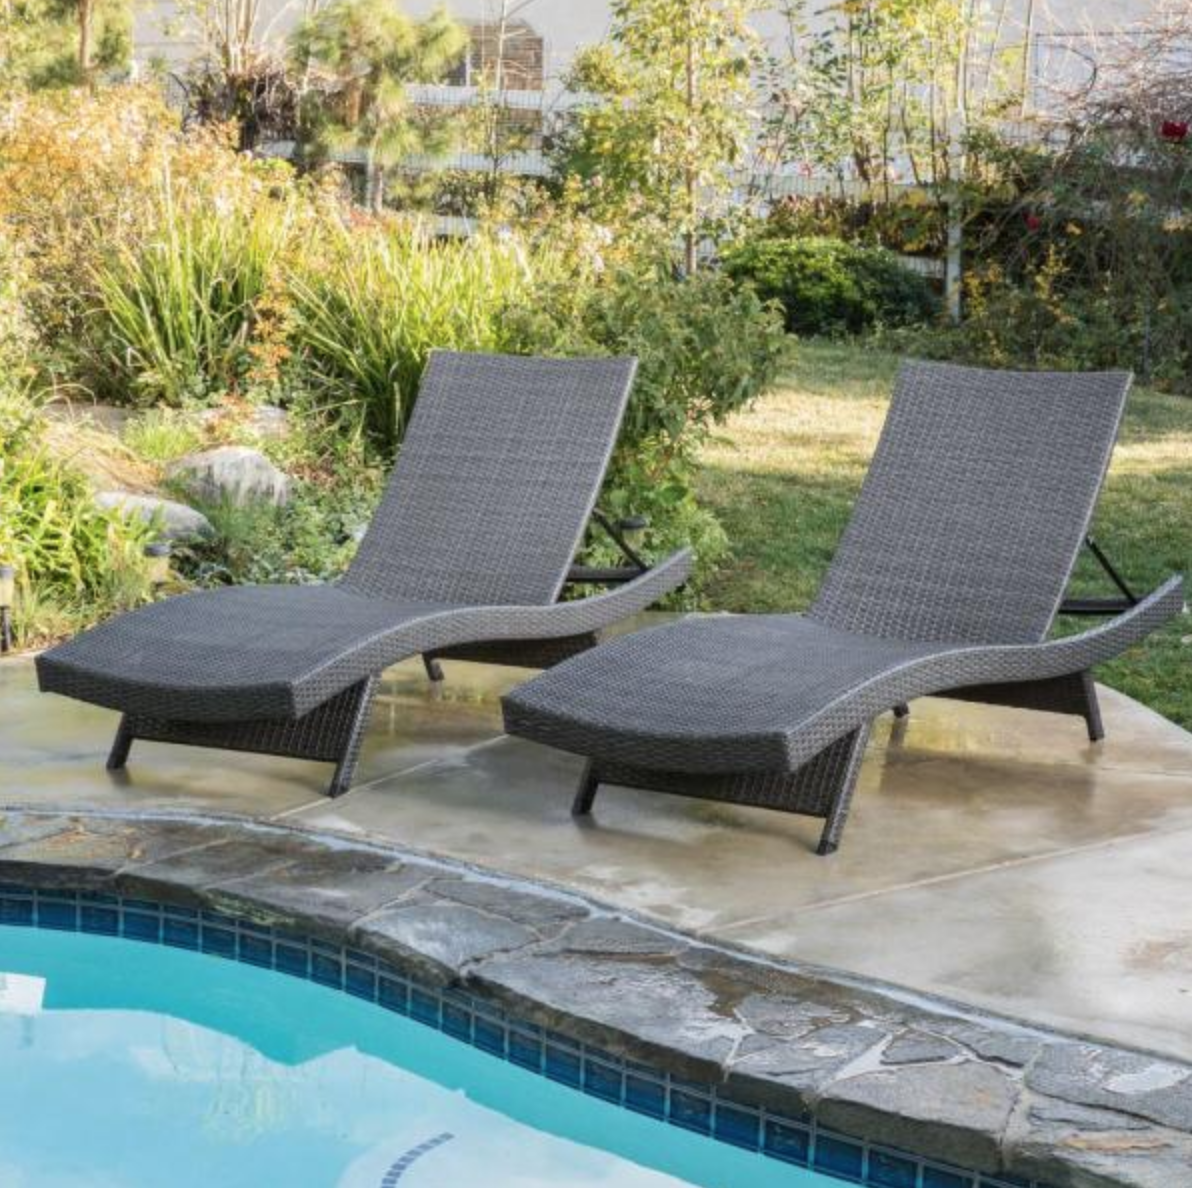 Home Depot Chaise Lounge Set